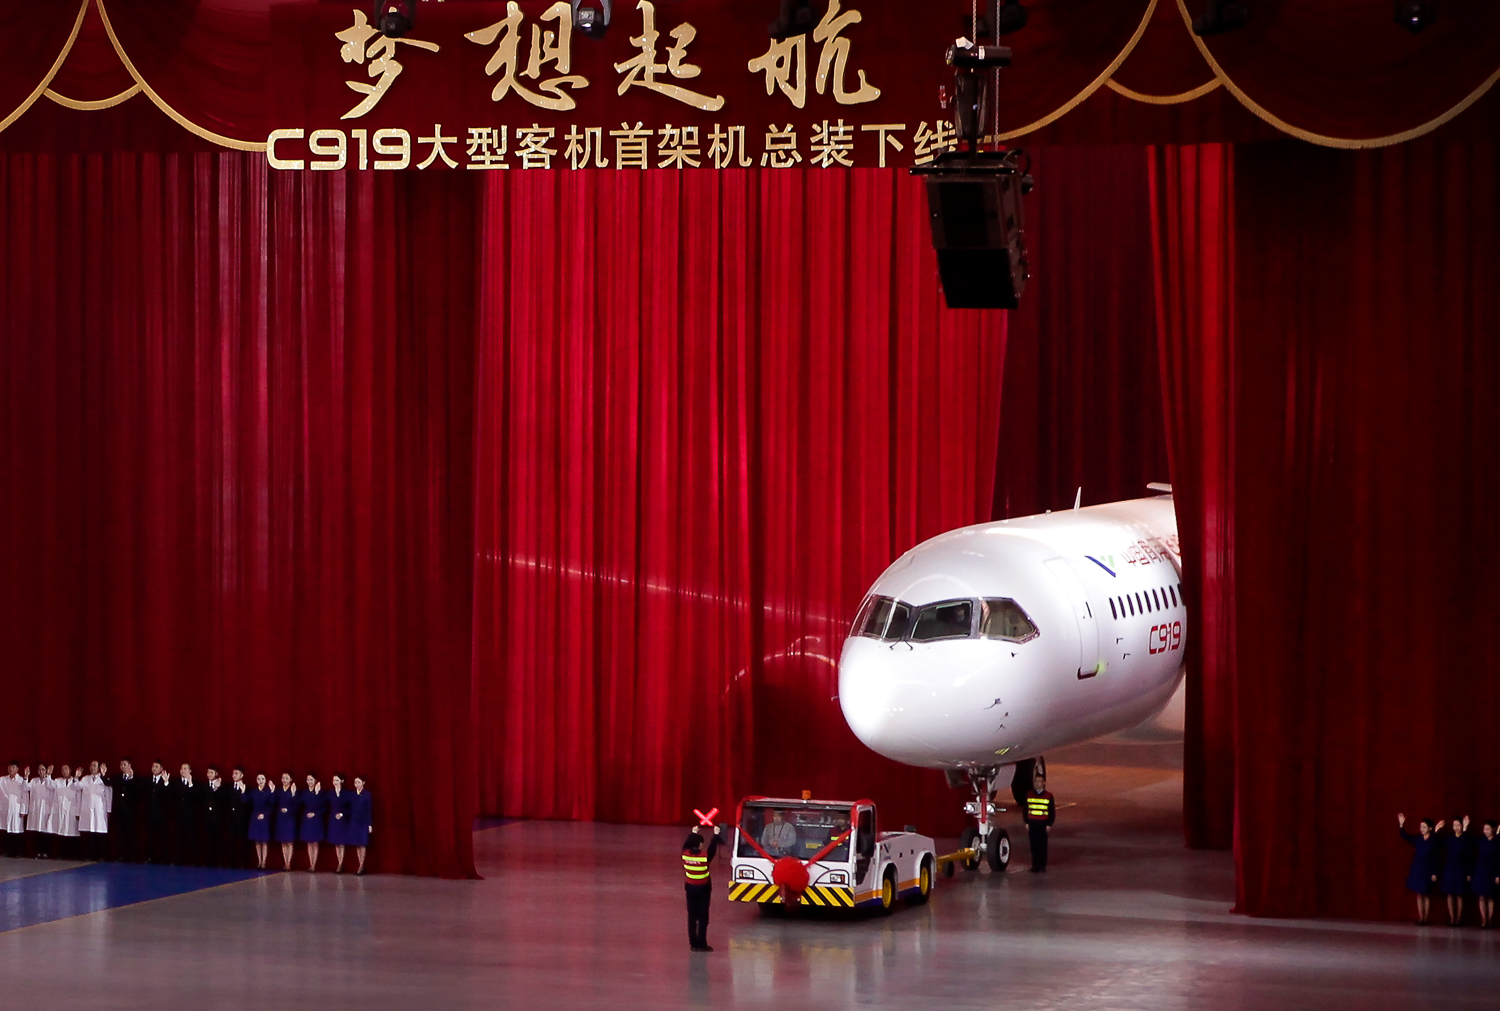 The first twin-engine 158-seater C919 passenger plane created by COMAC was presented during a ceremony at the company's hangar near the Pudong International Airport in Shanghai, China on Monday, Nov 2, 2015. [AP Photo]